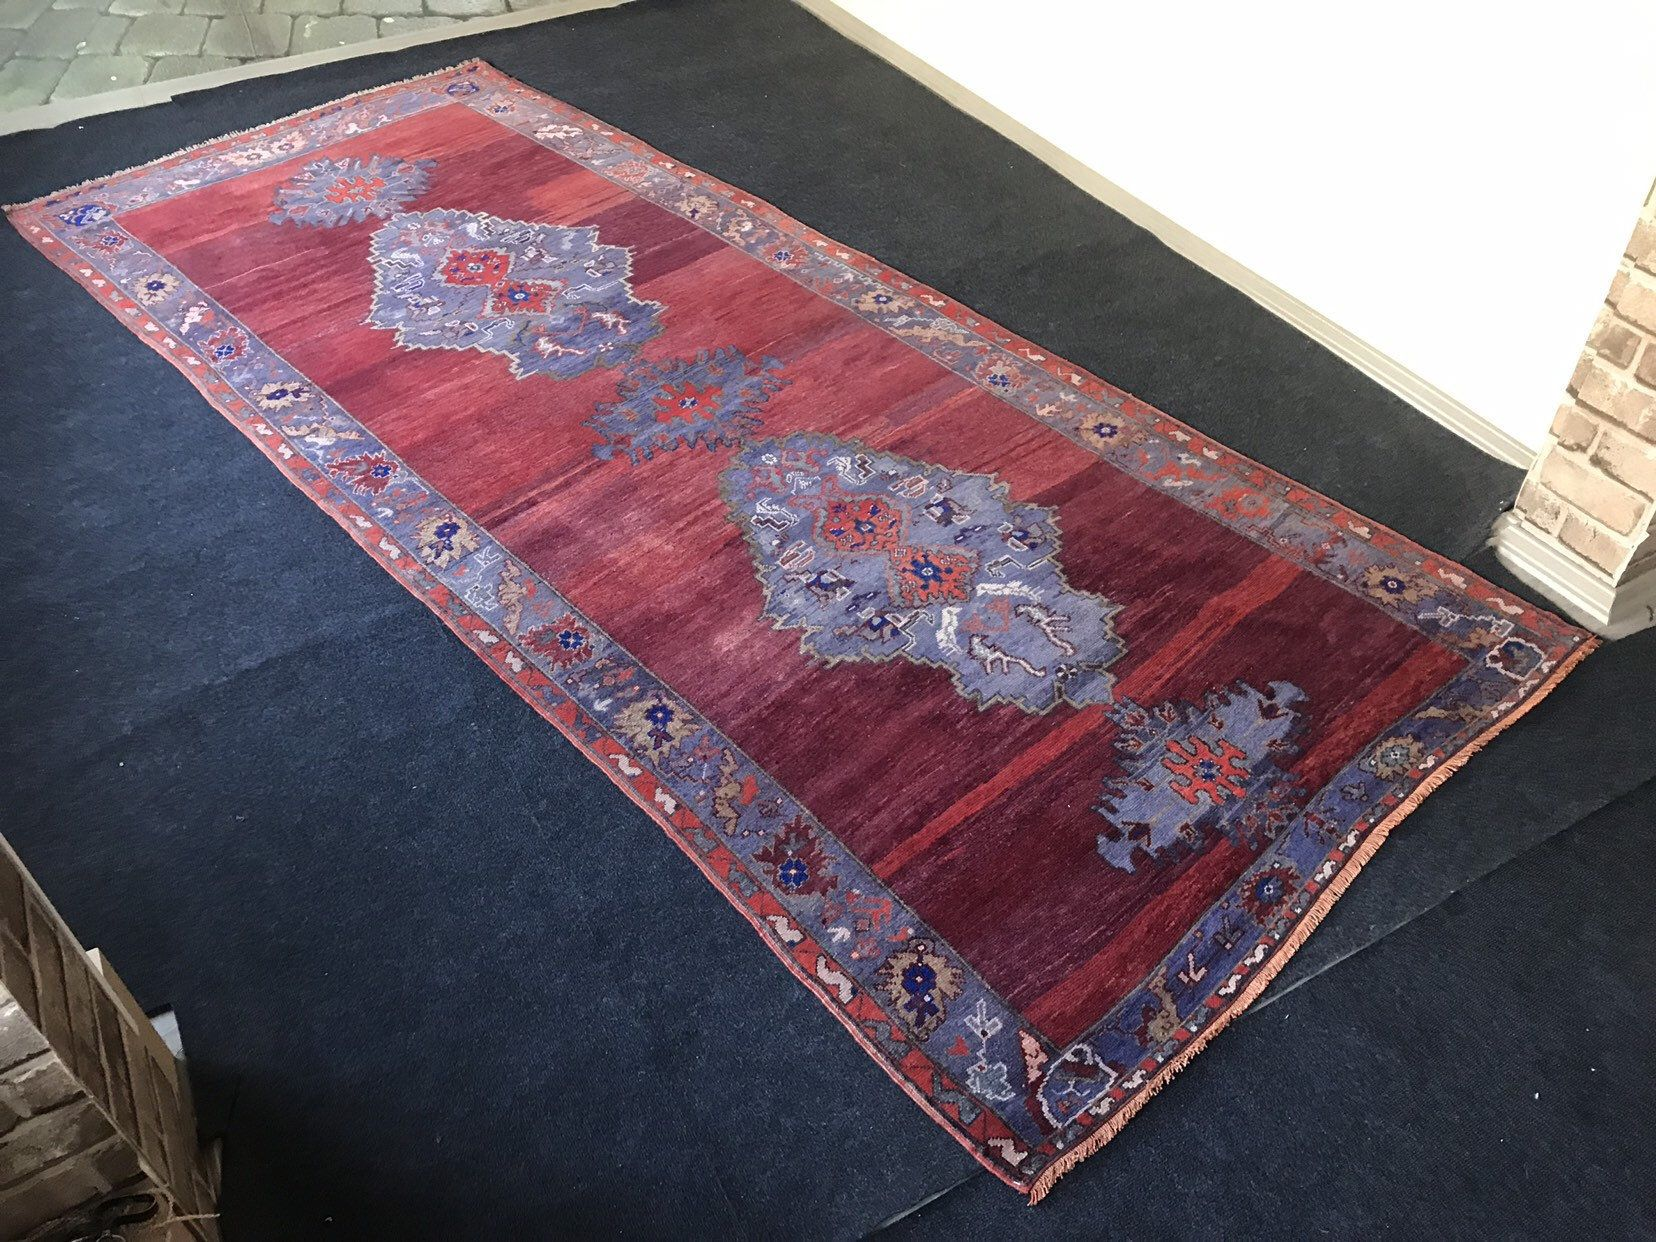 Hallway Large Rug Vintage Turkish Large Rug Oushak Turkish Large Rug Large Kitchen Rug Low Pile Muted Large Rug 4 10x12 Large Anatolian Rug In 2020 Large Kitchen Rugs Large Rugs Anatolian Rug